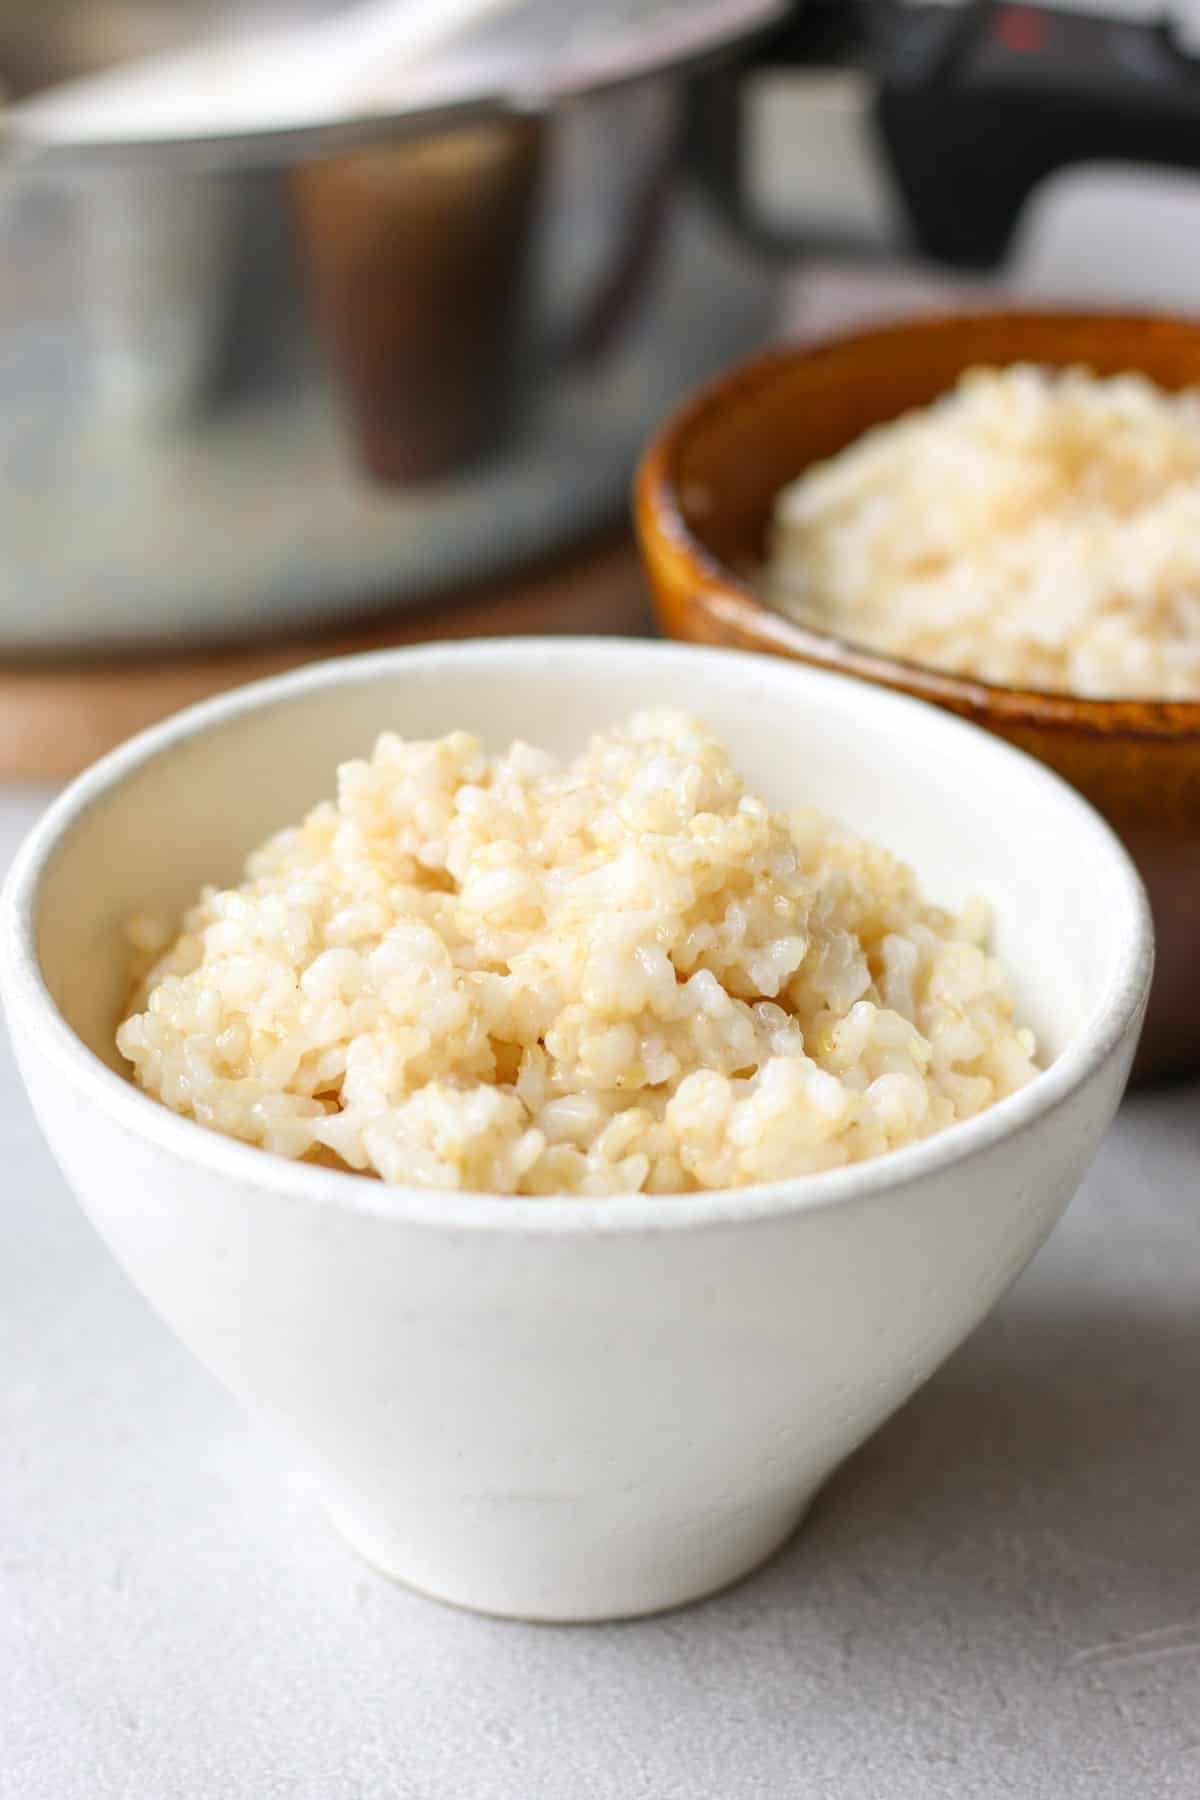 Japanese brown rice in a bowl